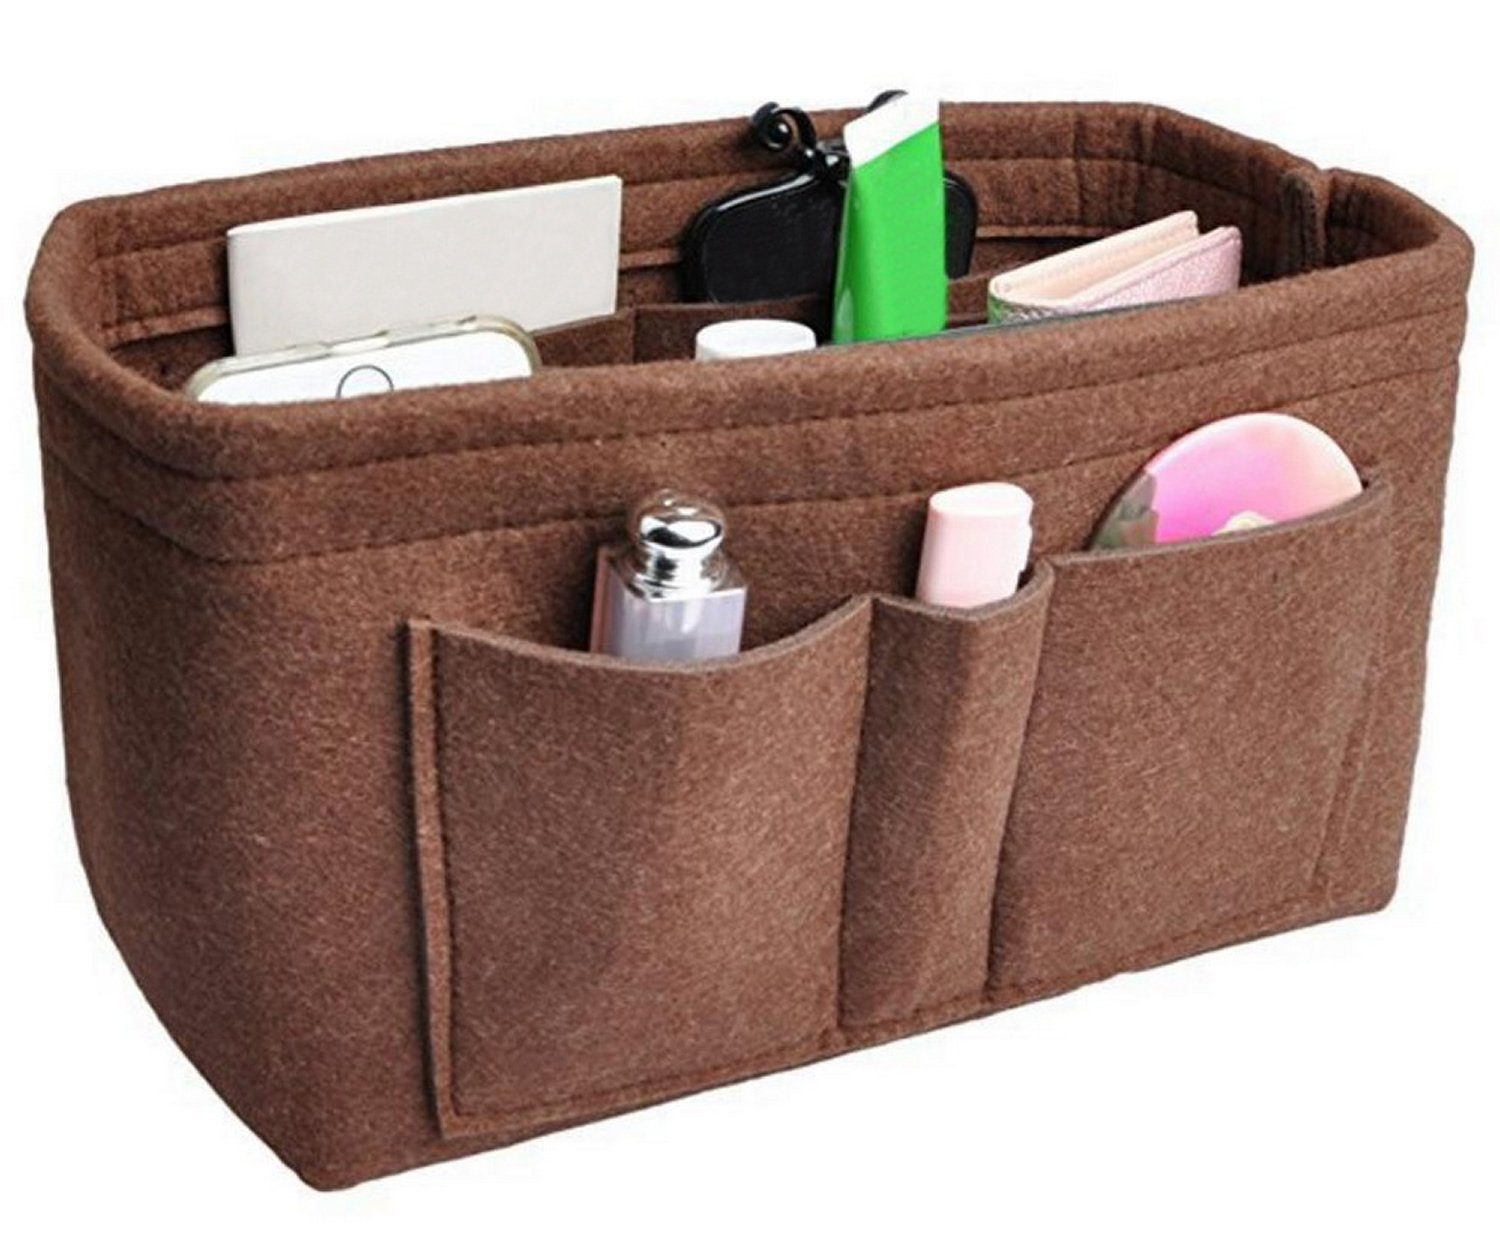 Foucome Felt Insert Purse Organizer Handbag Cosmetic Multi-Pocket Insert Bag for Women Brown Medium